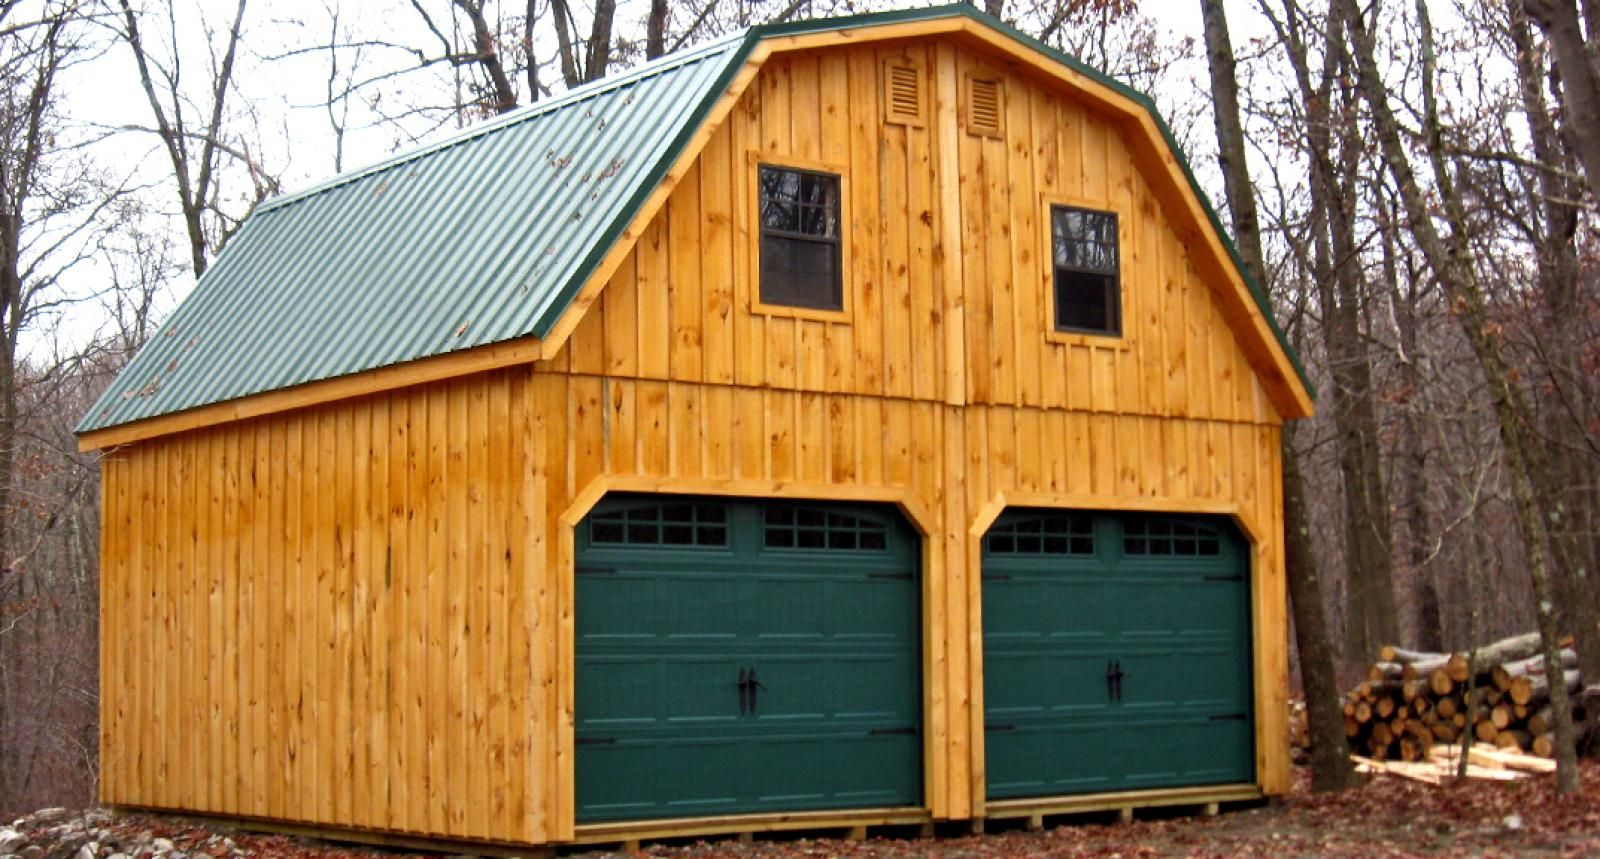 Horizon Structures Offers A Variety 2 Story Garages With Customizable  Options Including Added Living Quarters U0026 Dormers. Check Out These Prefab  Garages ...